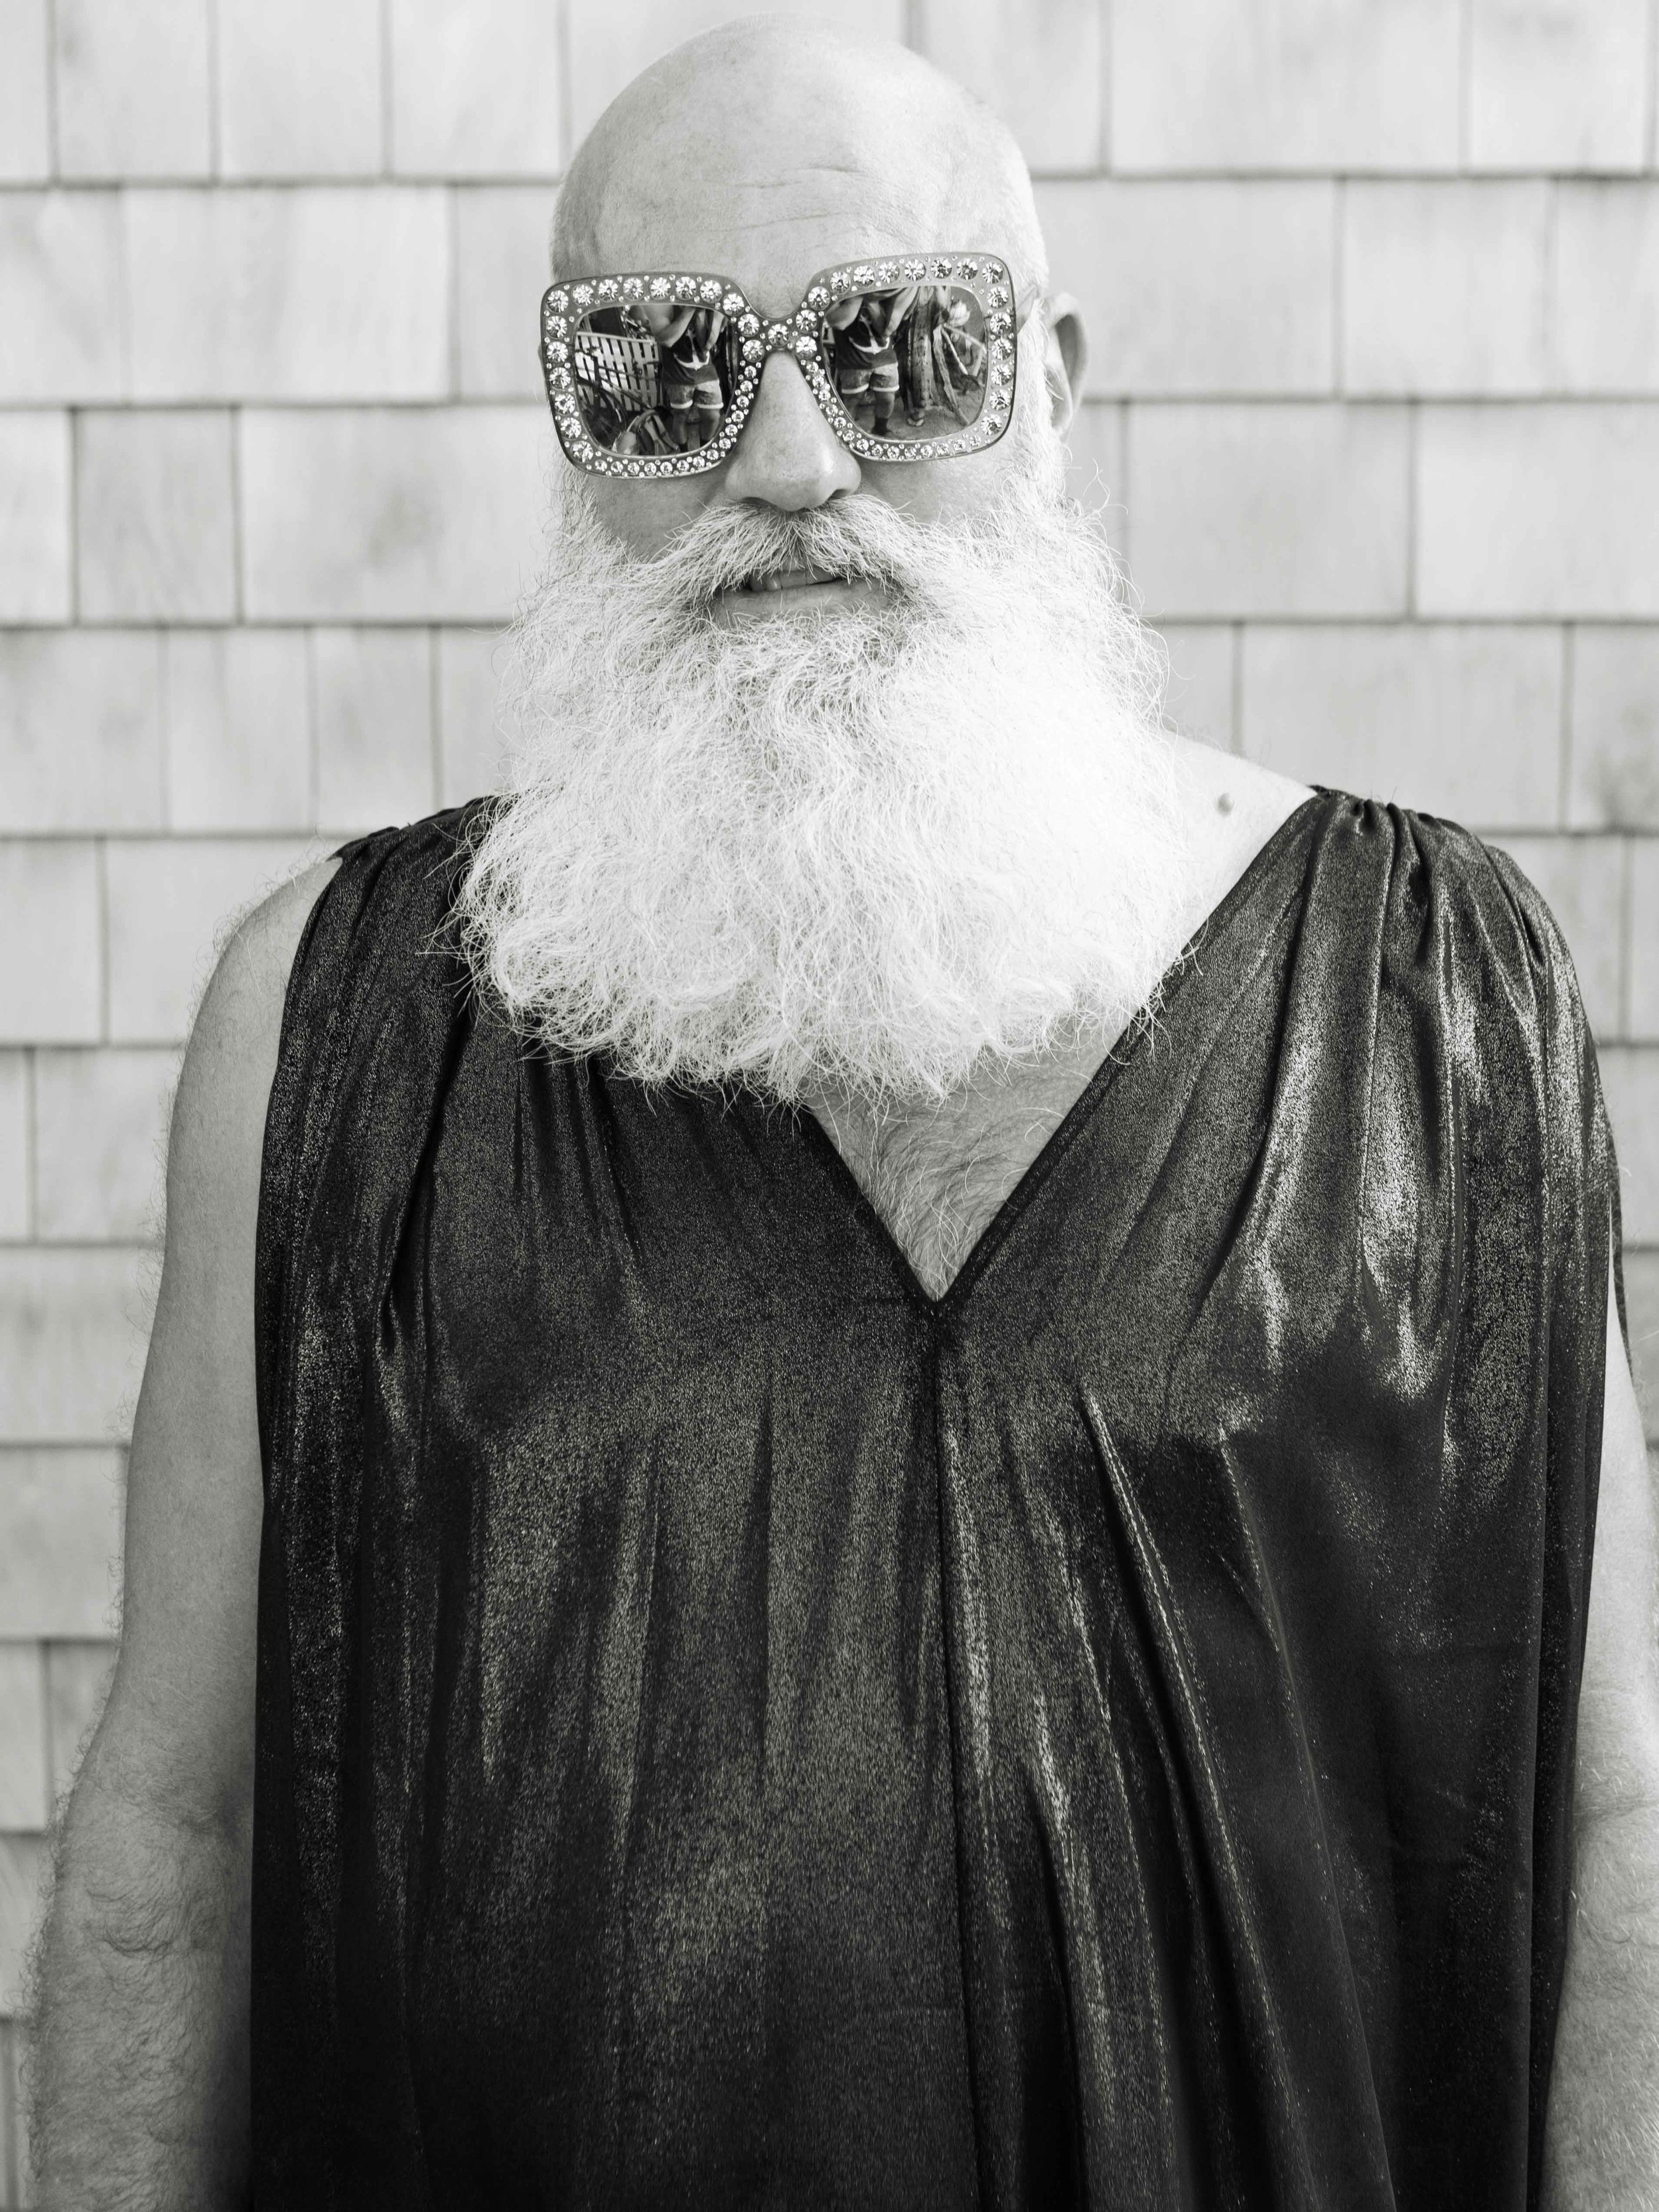 Portraits_In_Provincetown_2018_Credit_Emil_Cohen_144.jpg